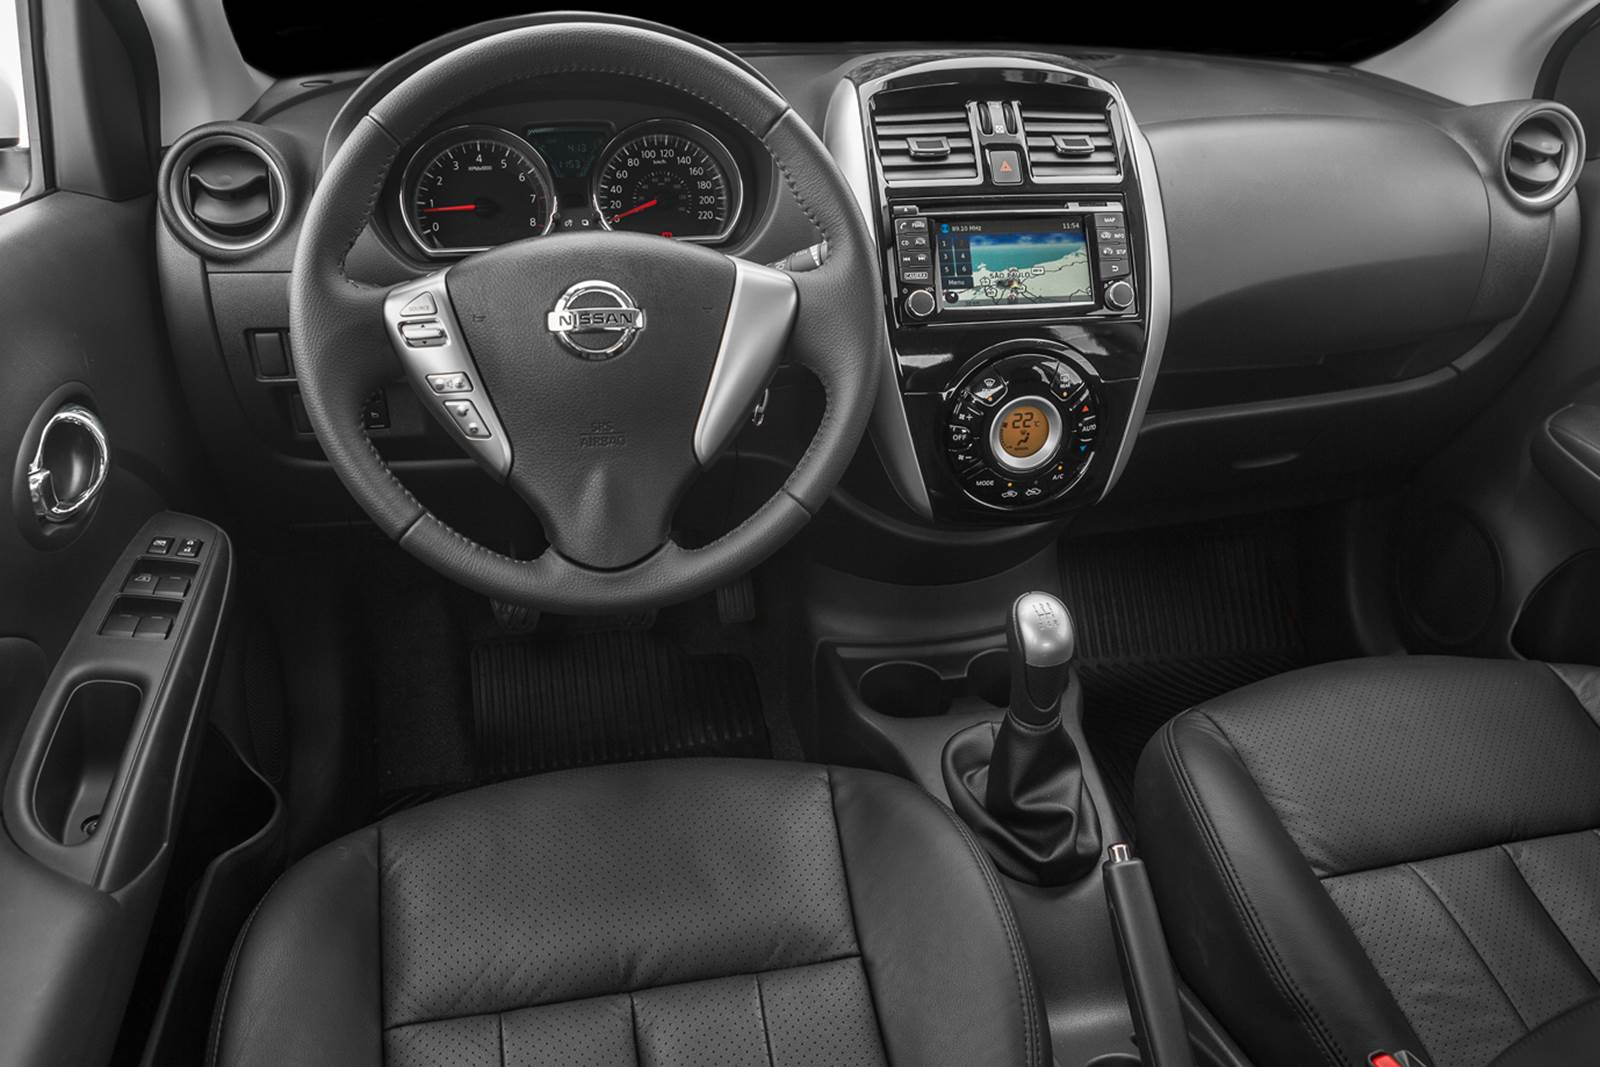 Novo Nissan Versa 2016 1.6 Unique - interior